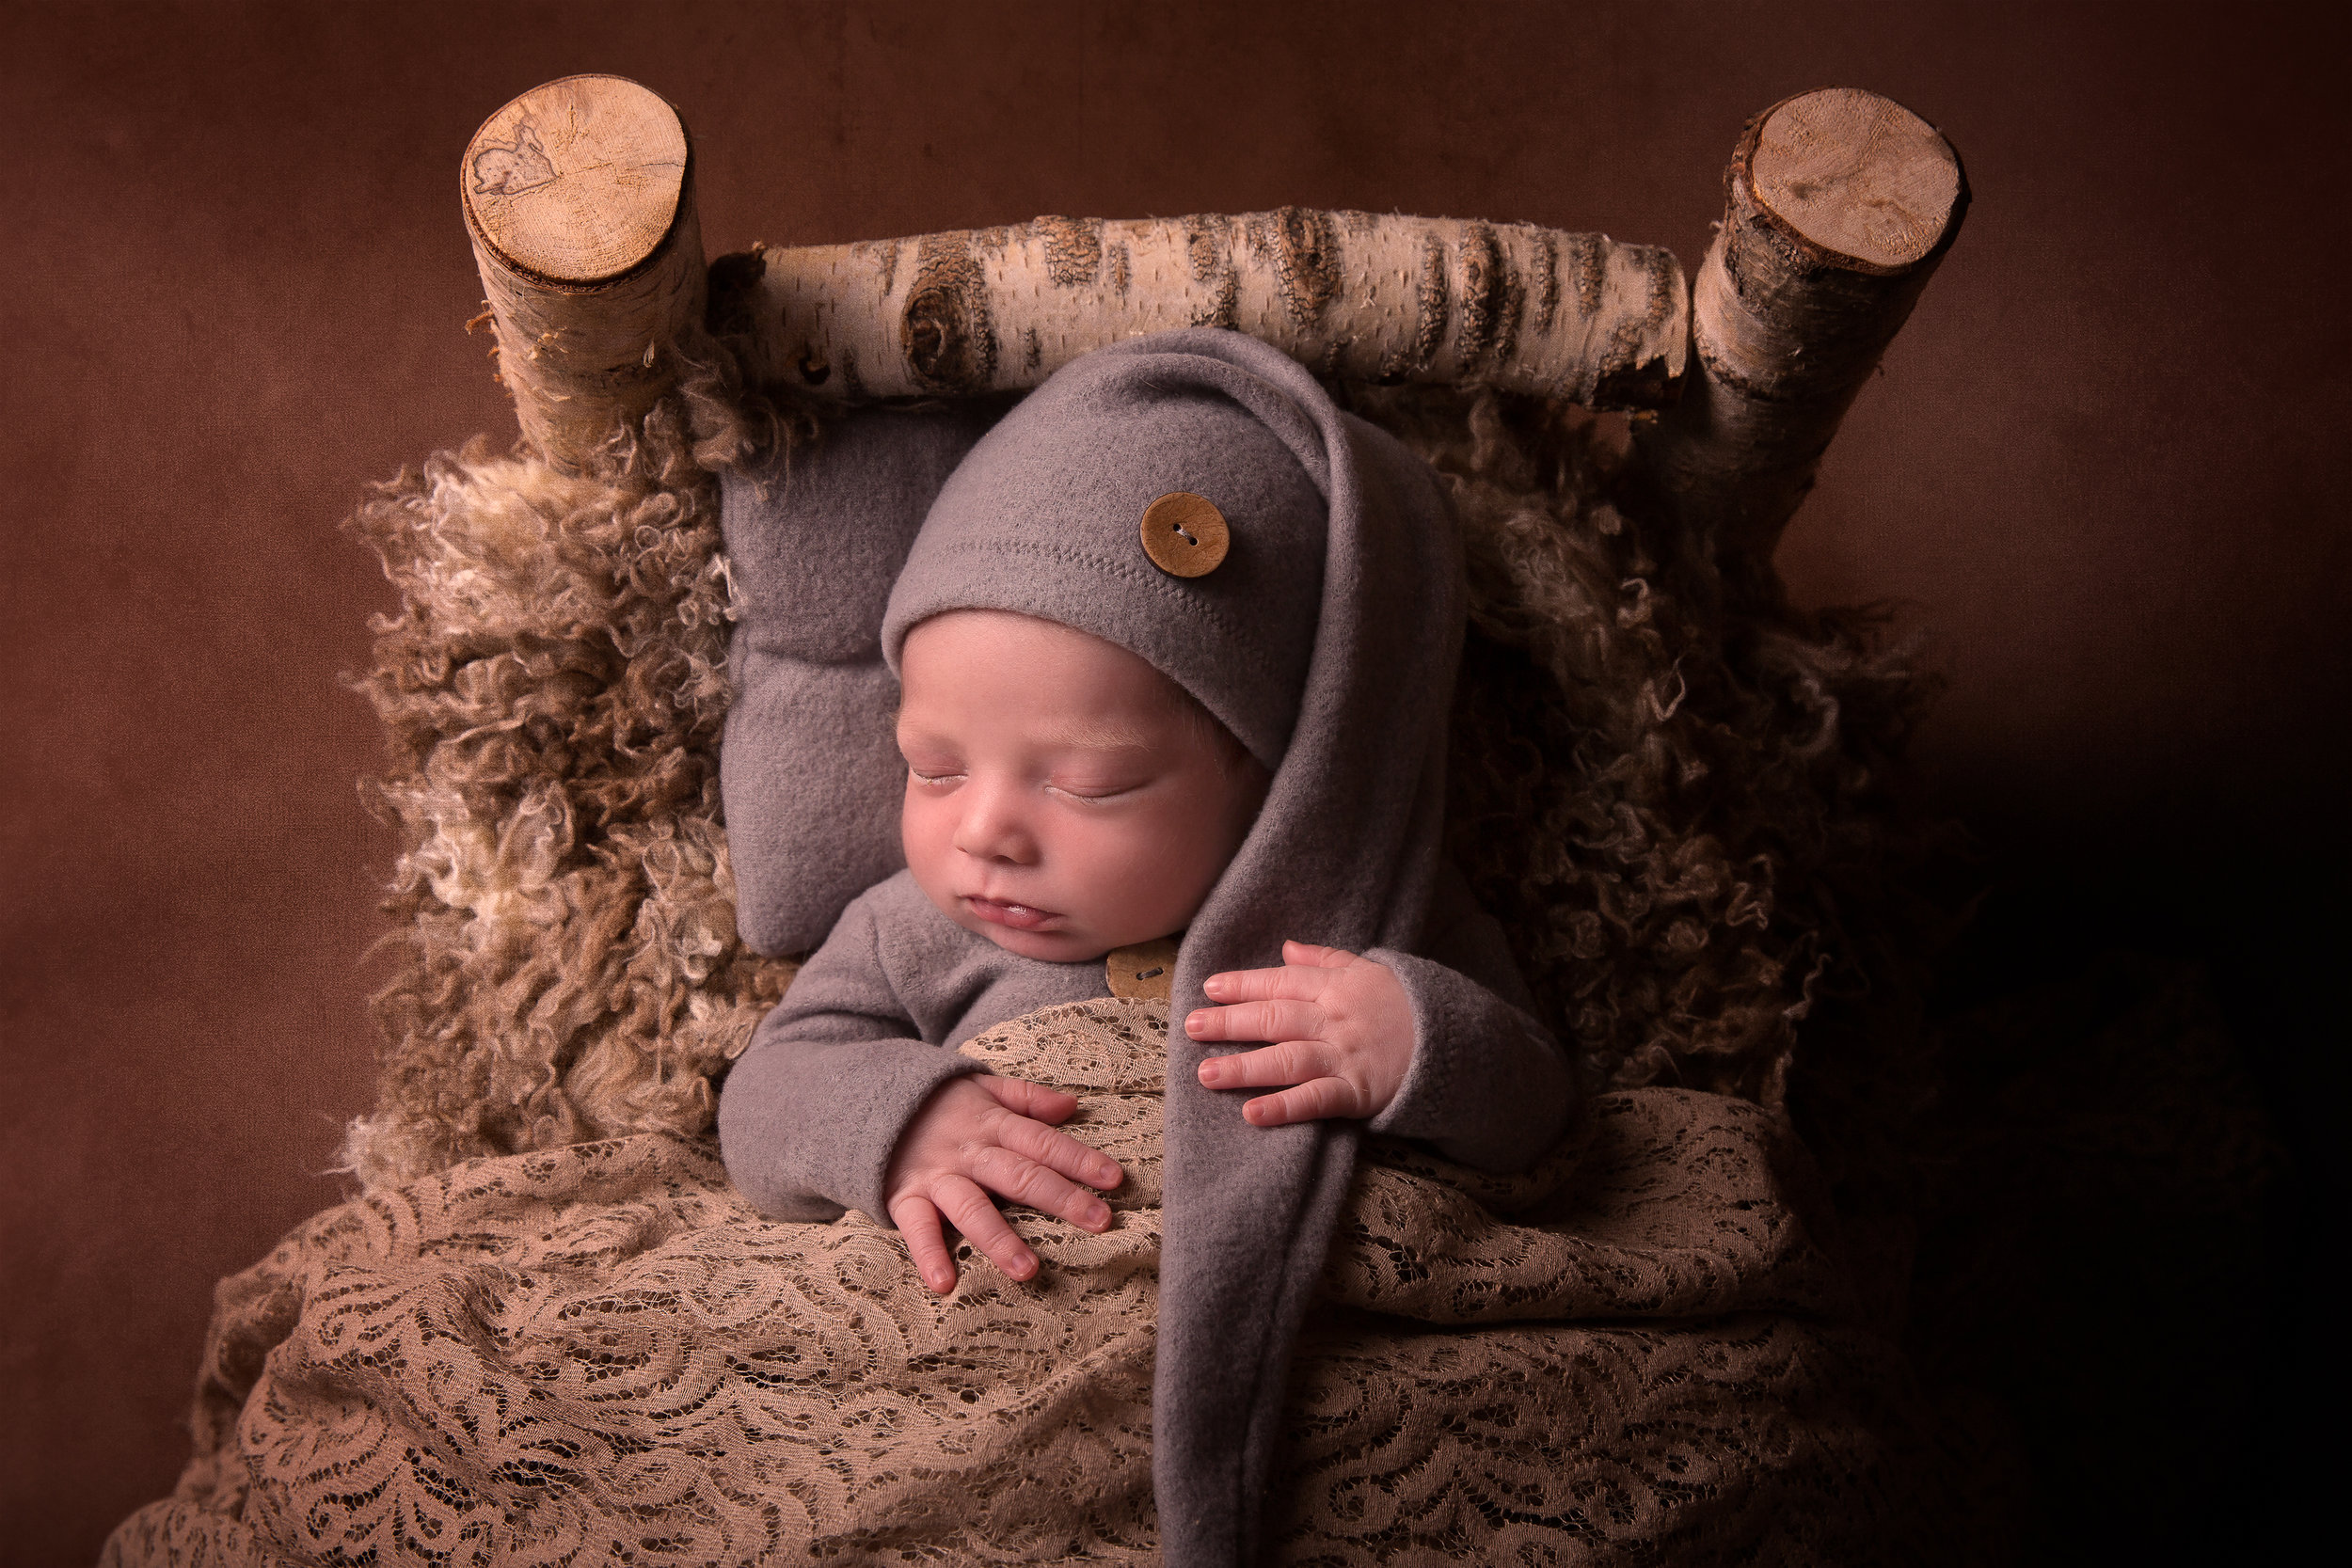 Sleepy time By Emily Miller Photography, Home studio in Orpington, Chelsfield, London Borough of Bromley, BR6